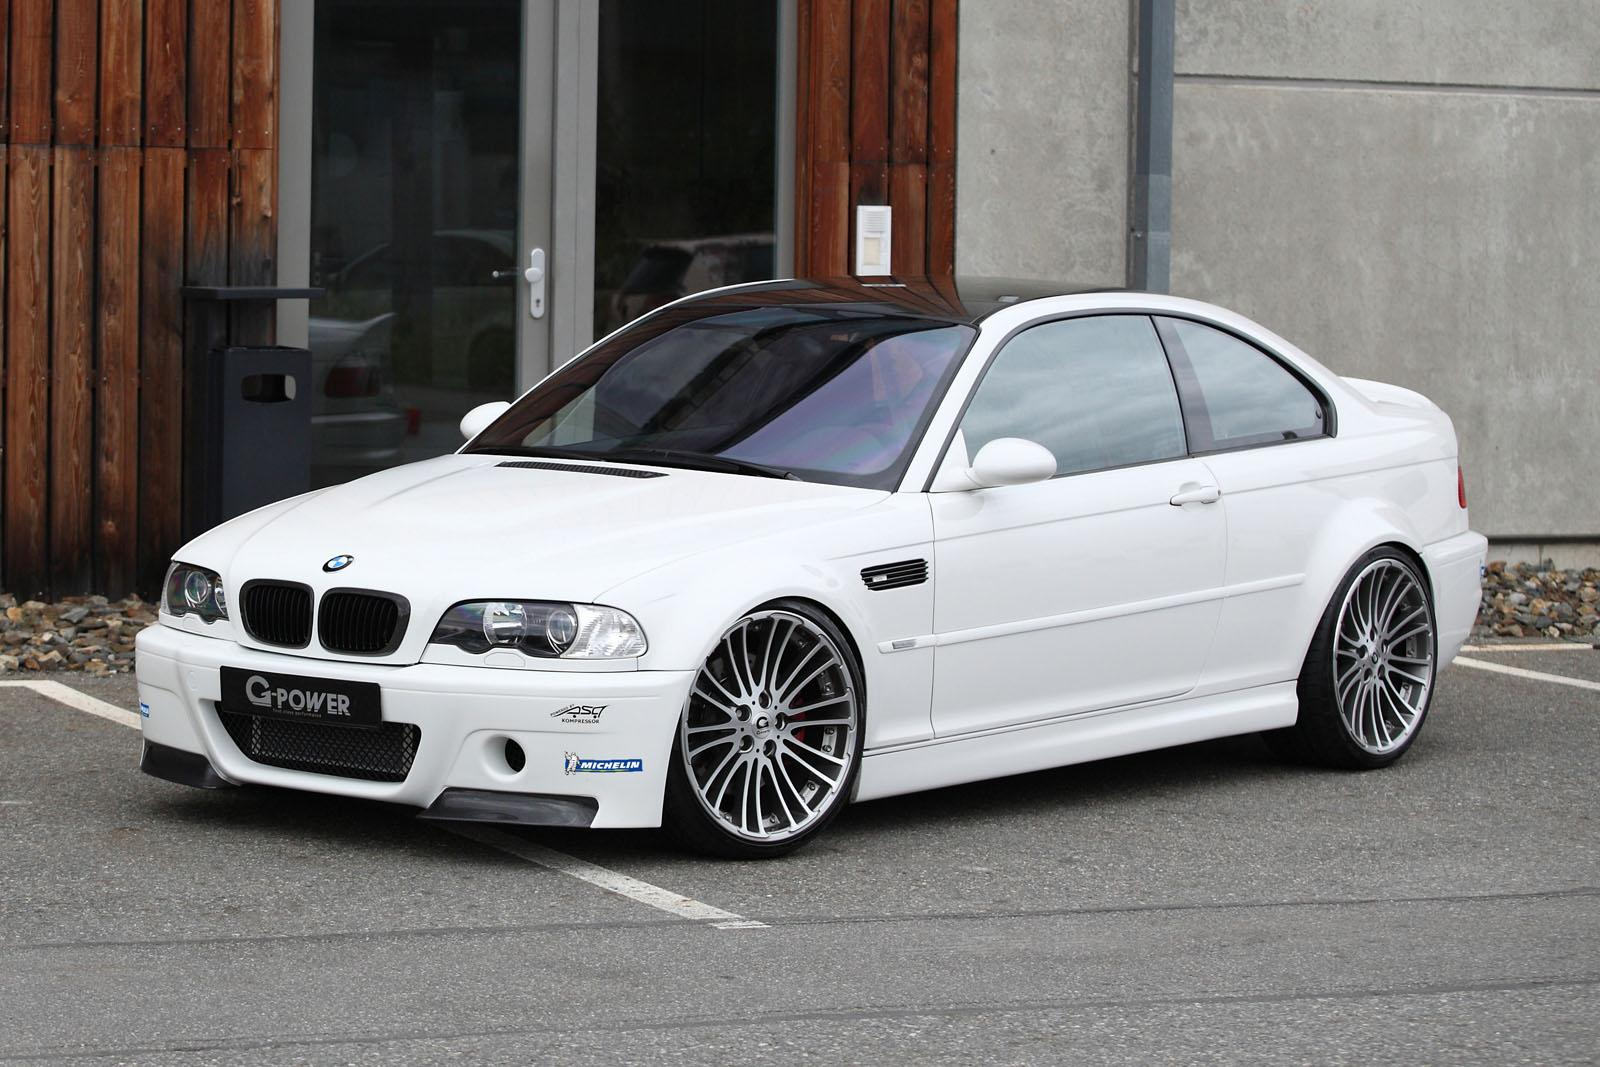 g power bmw m3 e46 car tuning styling. Black Bedroom Furniture Sets. Home Design Ideas